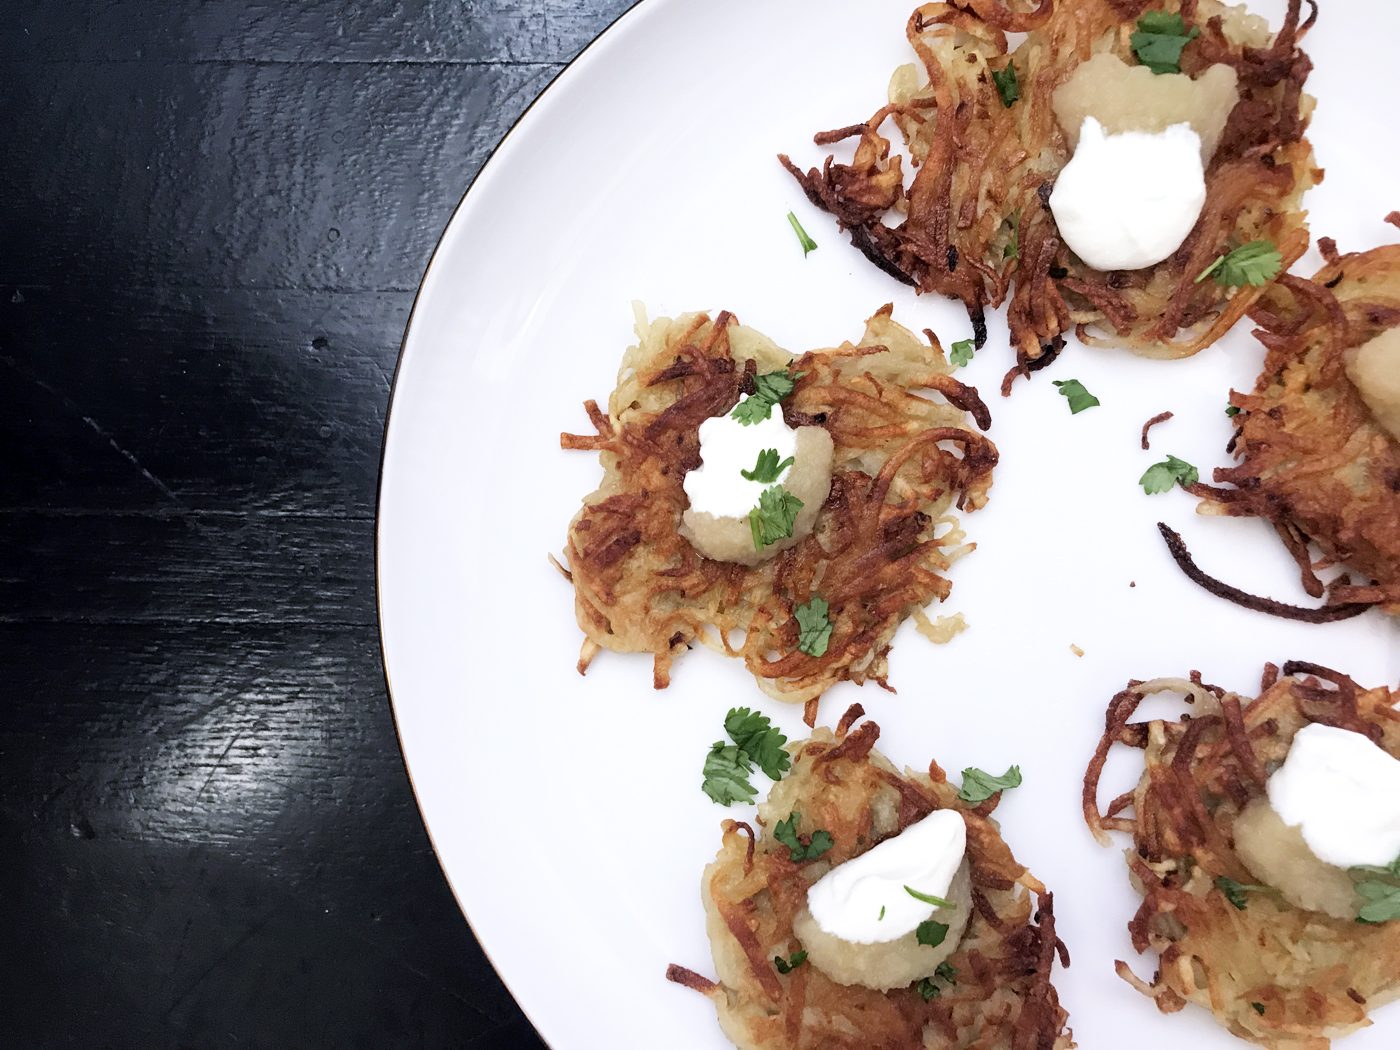 Classic Hanukkah recipes: Easiest (and best!) Potato Latkes recipe by Stacie Billis at Cool Mom Eats